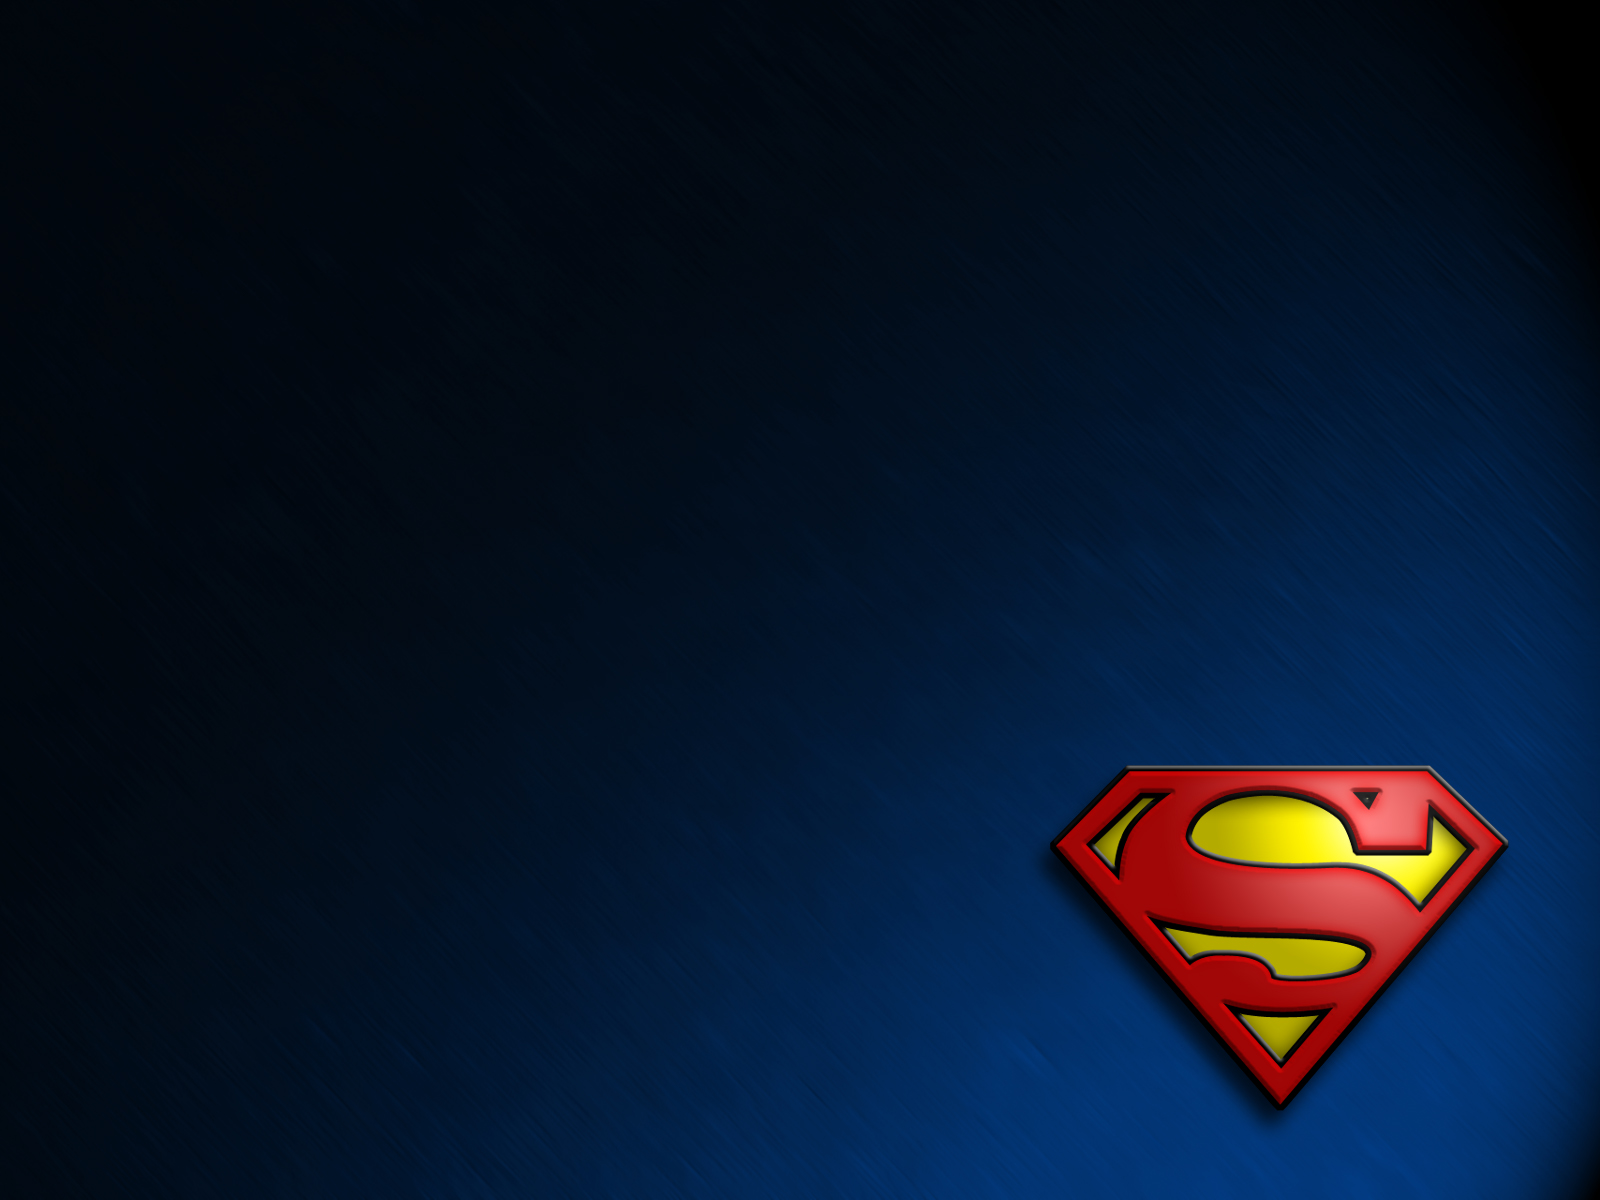 Superman achtergronden hd superman wallpapers afbeelding 18jpg 1600x1200